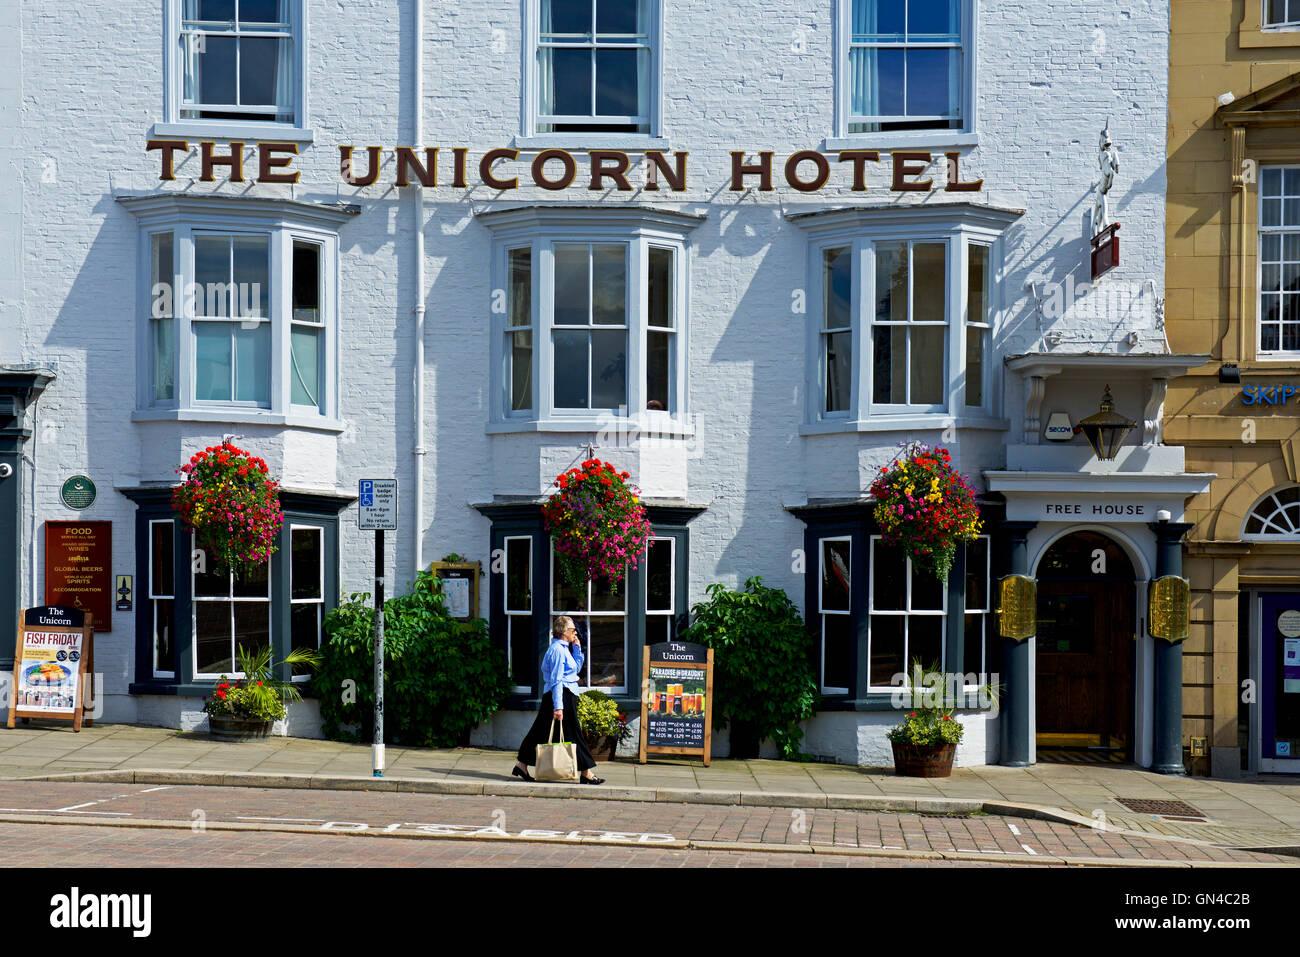 The Unicorn hotel, a Wetherspoon pub in Ripon, North Yorkshire, England UK - Stock Image